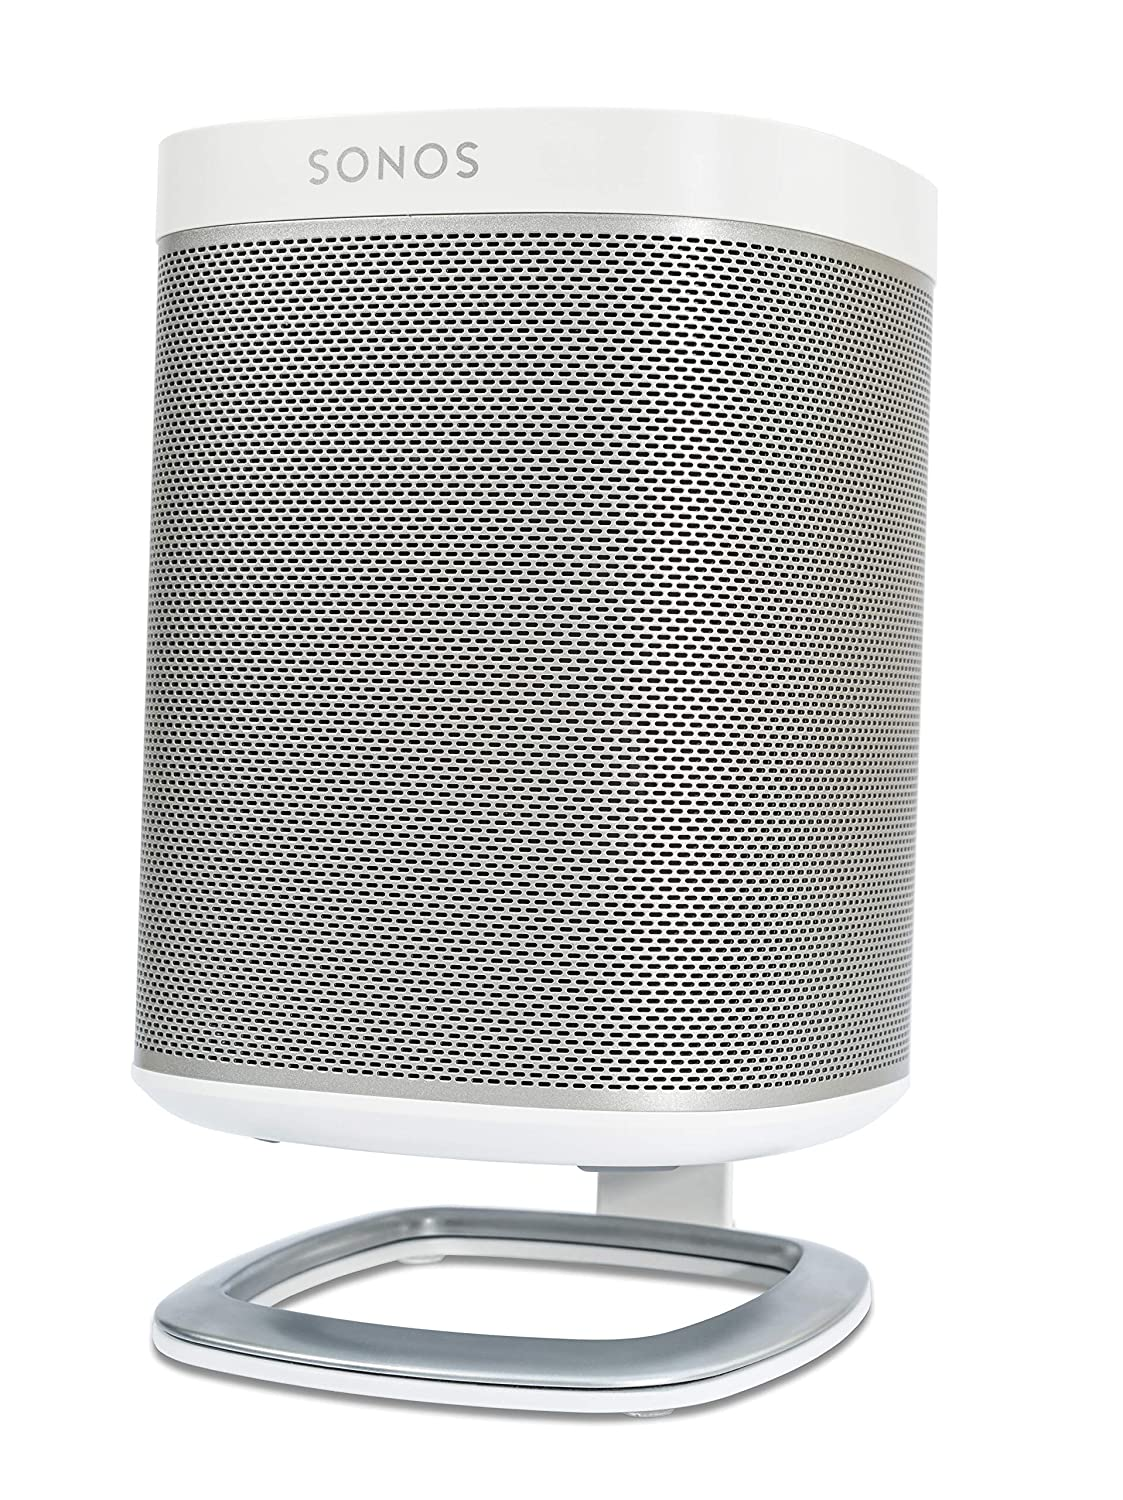 Flexson Desk Stand for SONOS PLAY:1 Speakers-White-Single FLXP1DS1011